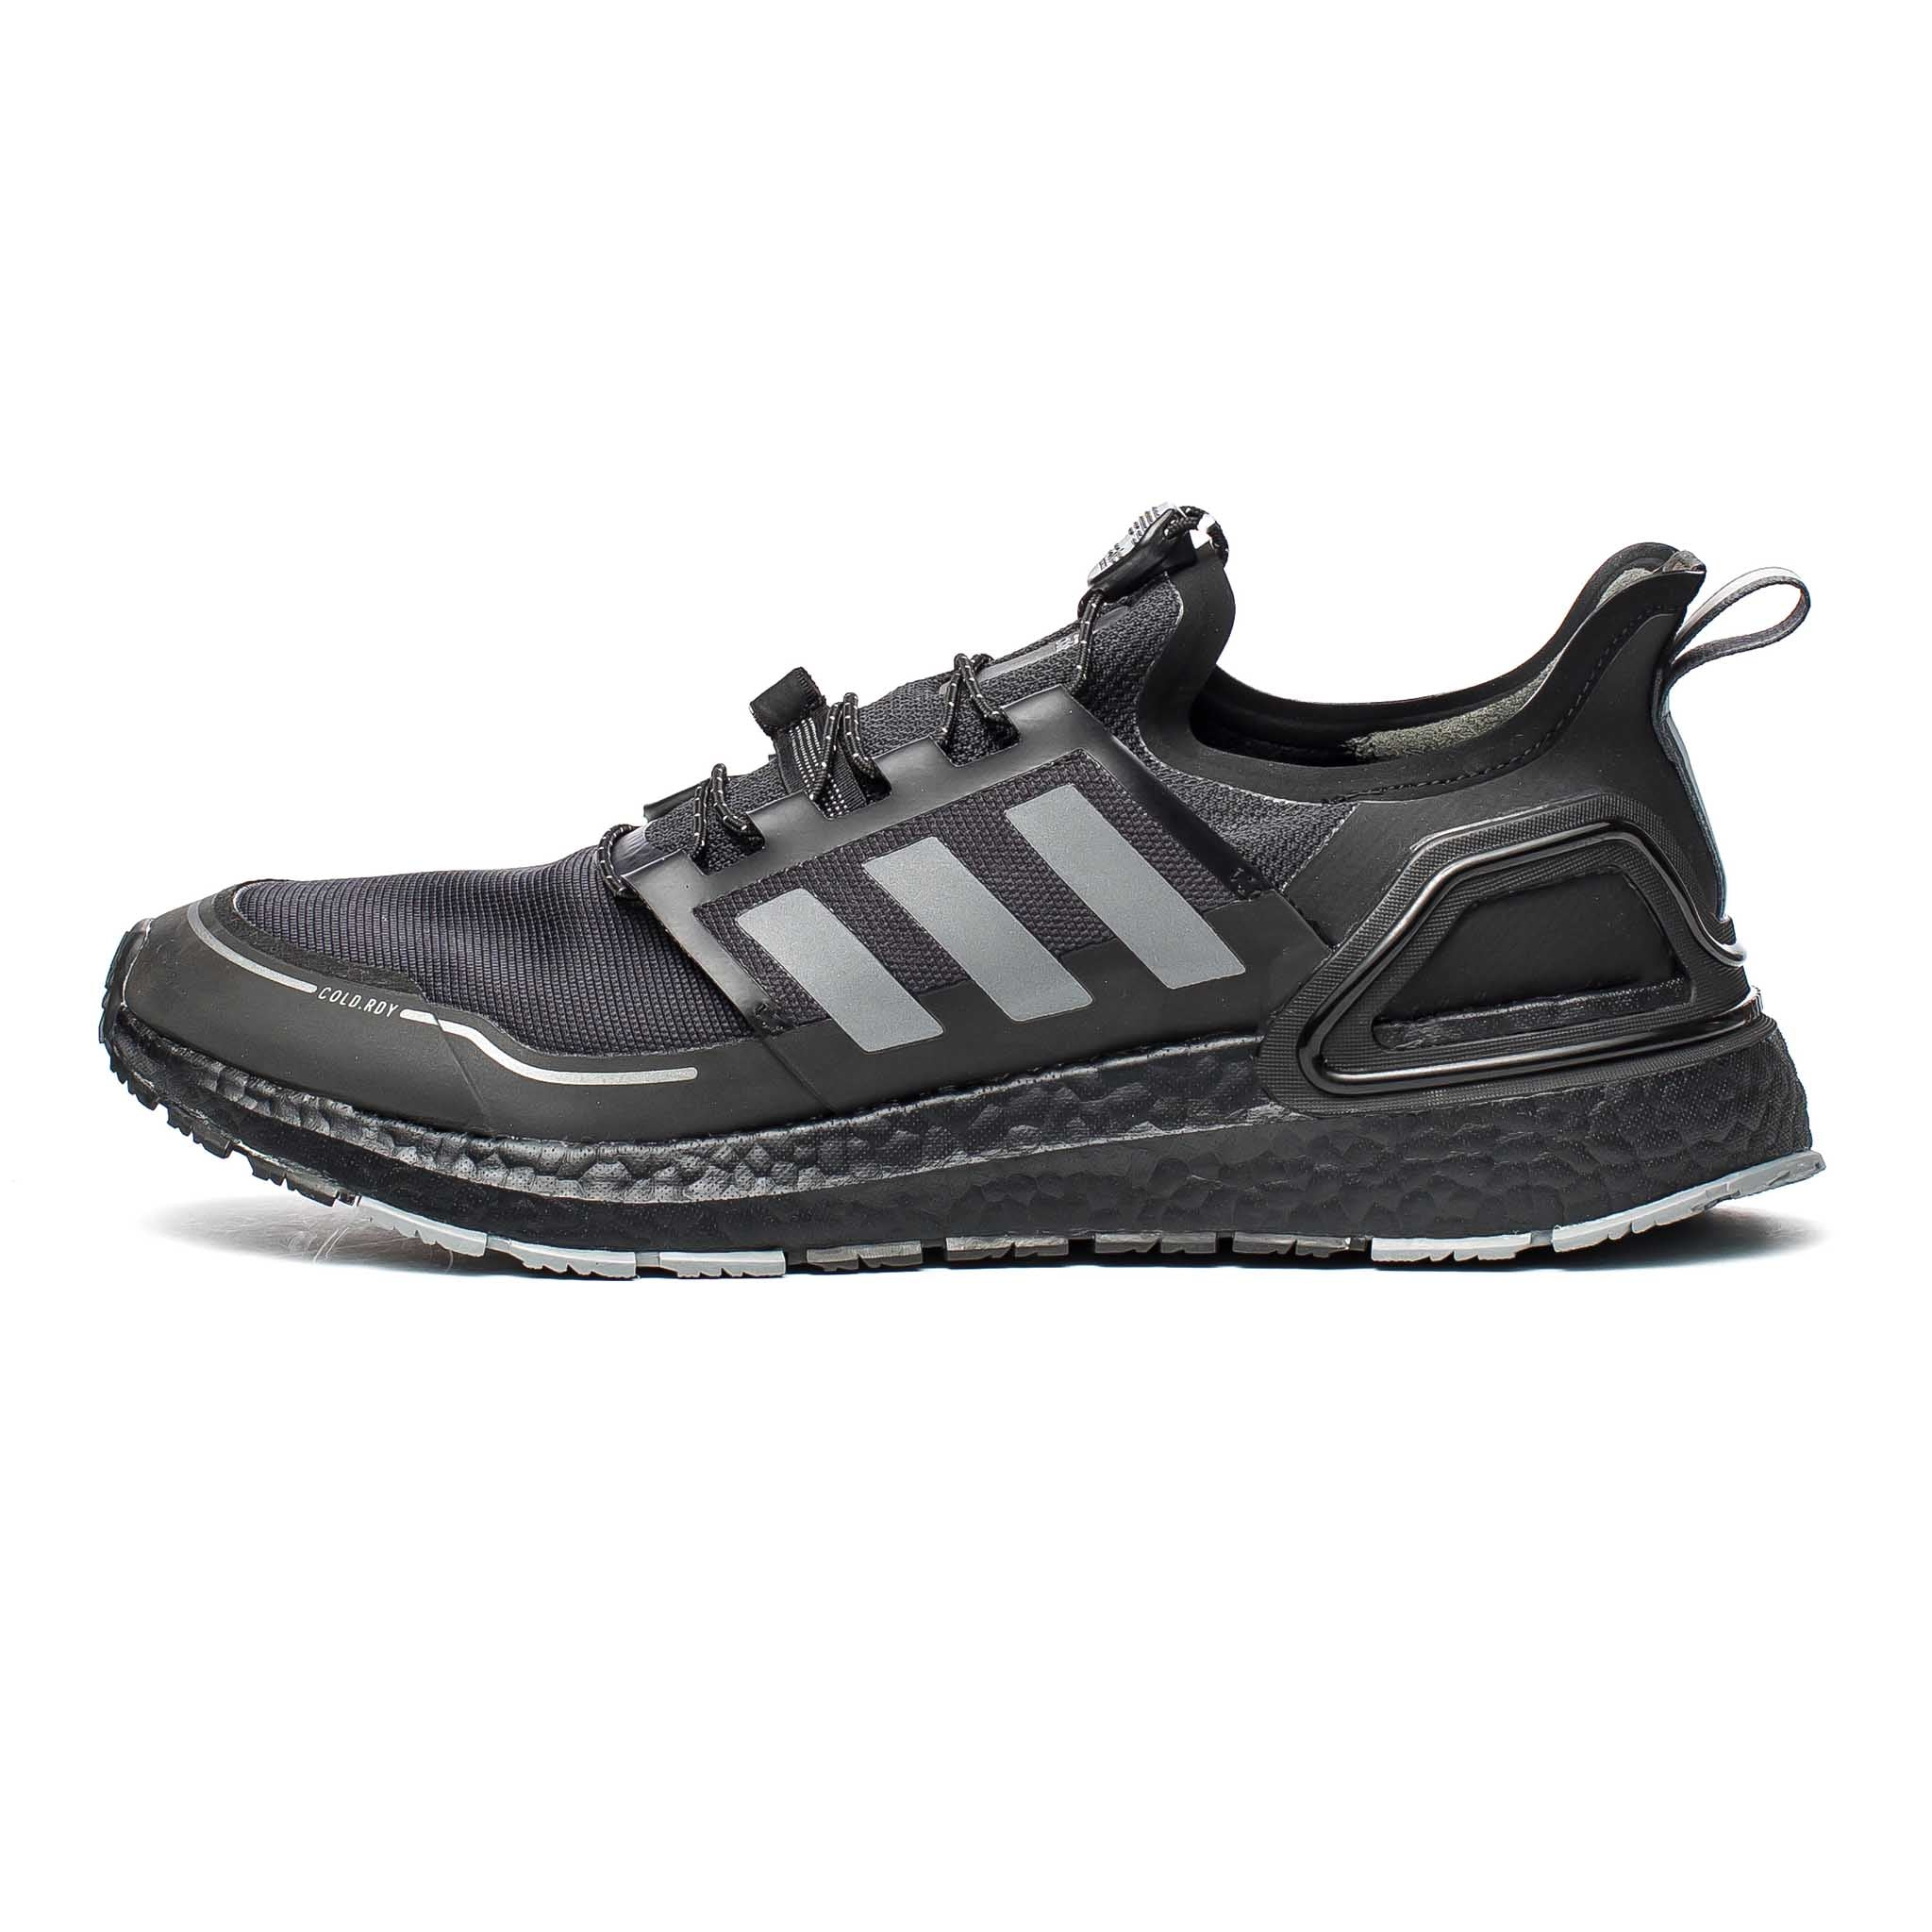 ADIDAS Ultraboost WINTER.RDY Core Black/Iron Metallic